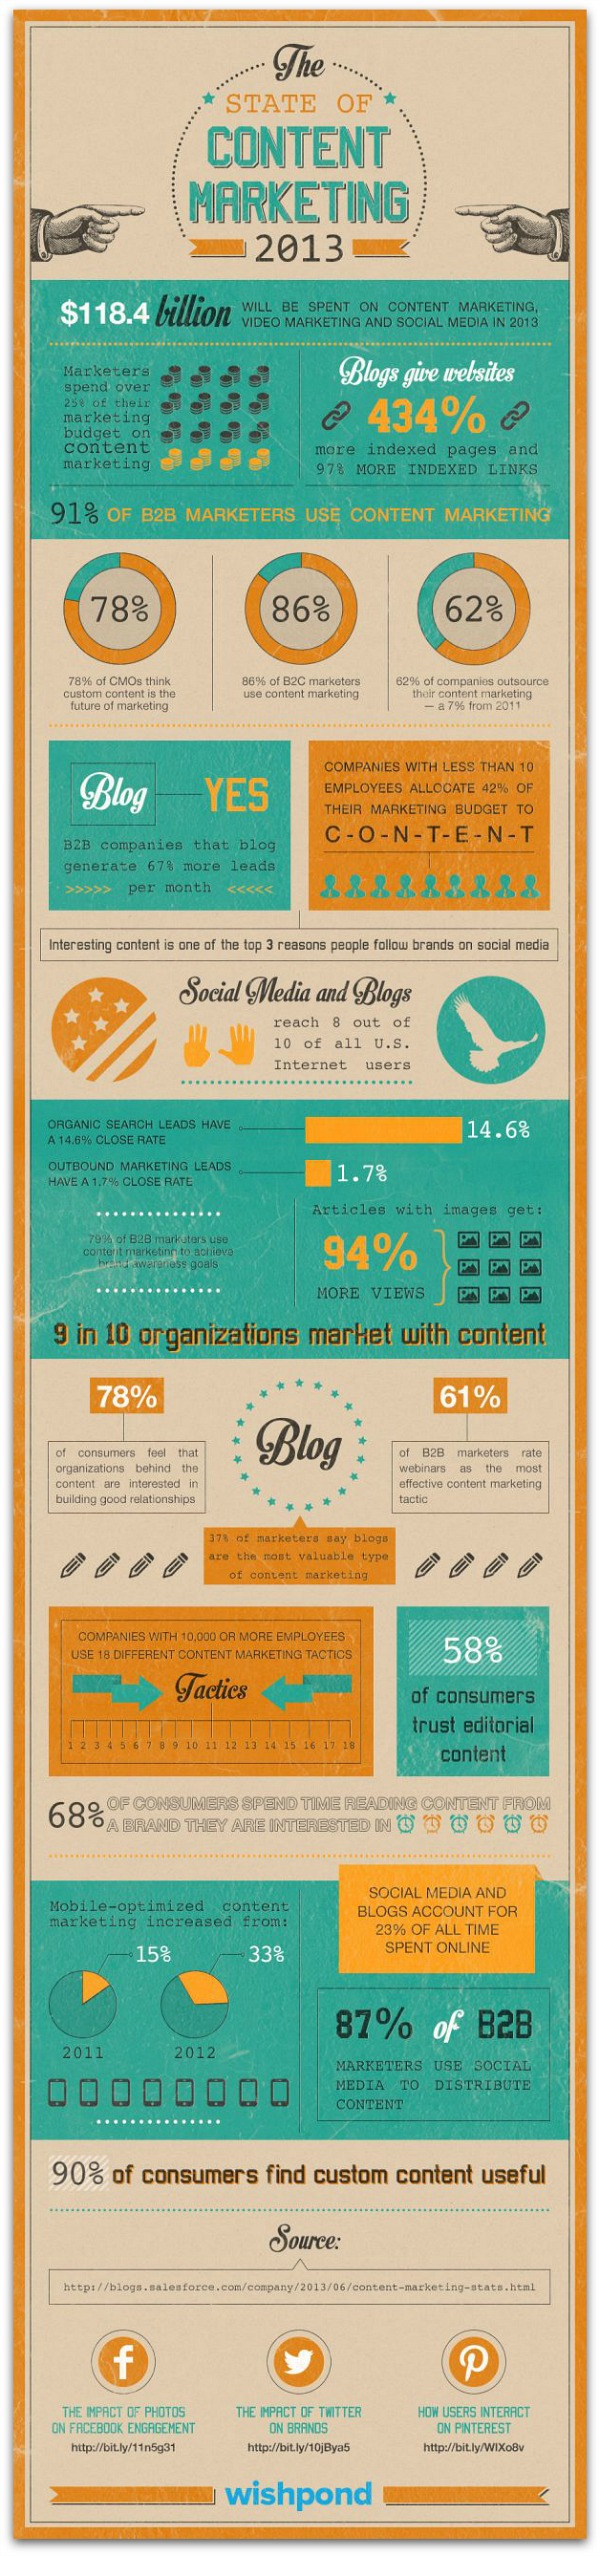 State_of_Content_Marketing_Infographic[1].jpg